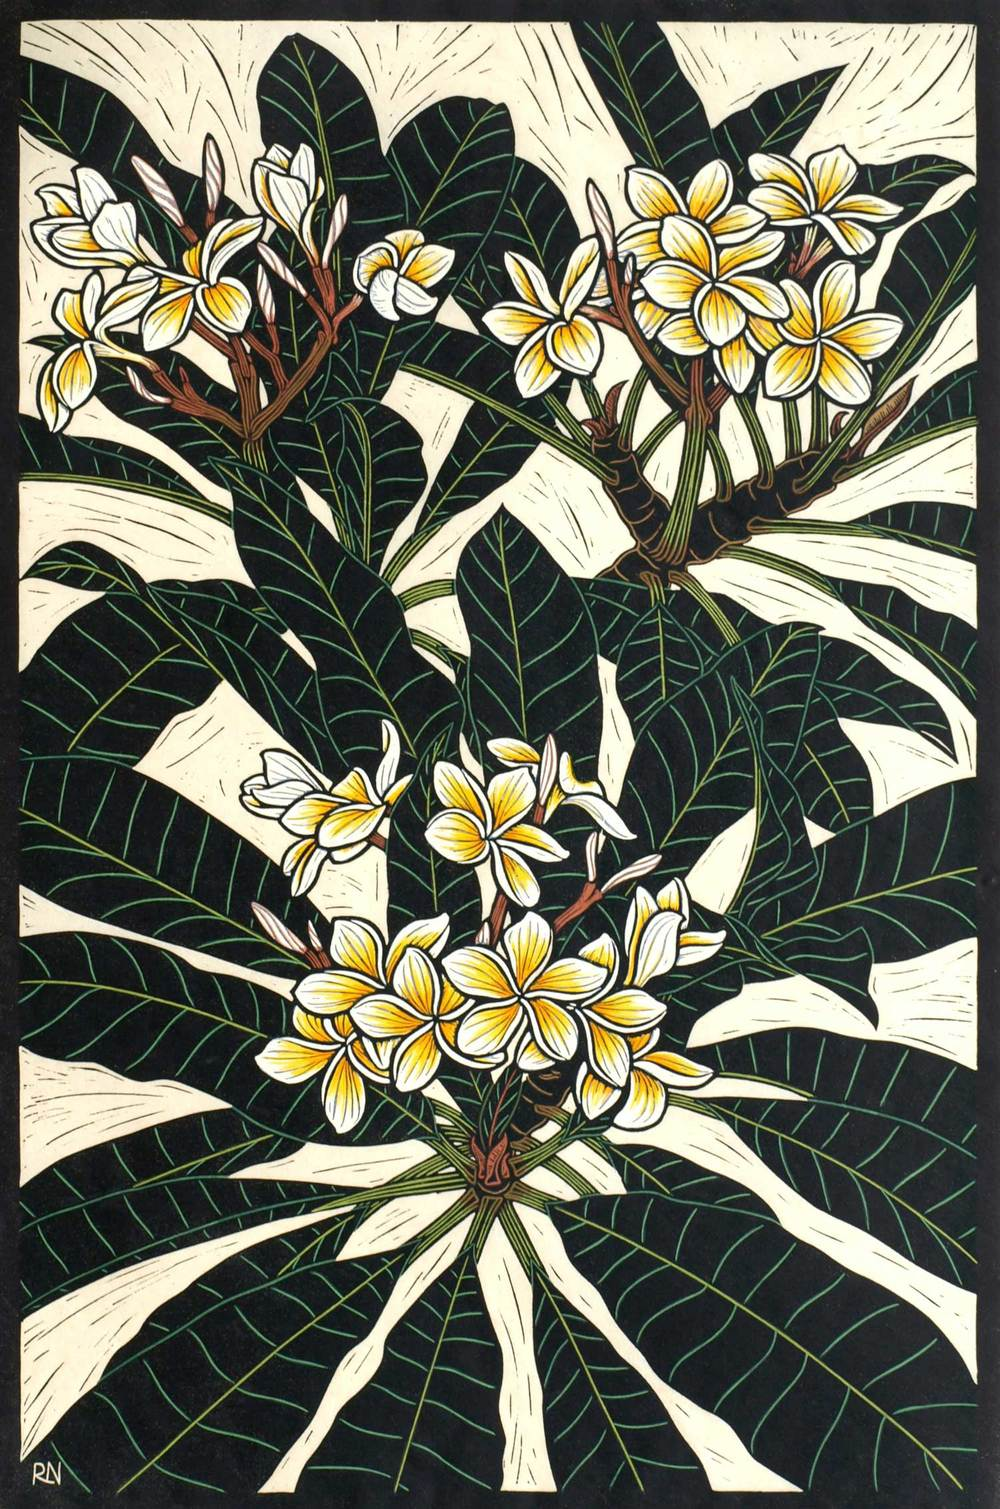 FRANGIPANI TREE  74.5 X 49.5 CM EDITION OF 50  HAND COLOURED LINOCUT ON HANDMADE JAPANESE PAPER  $1,550